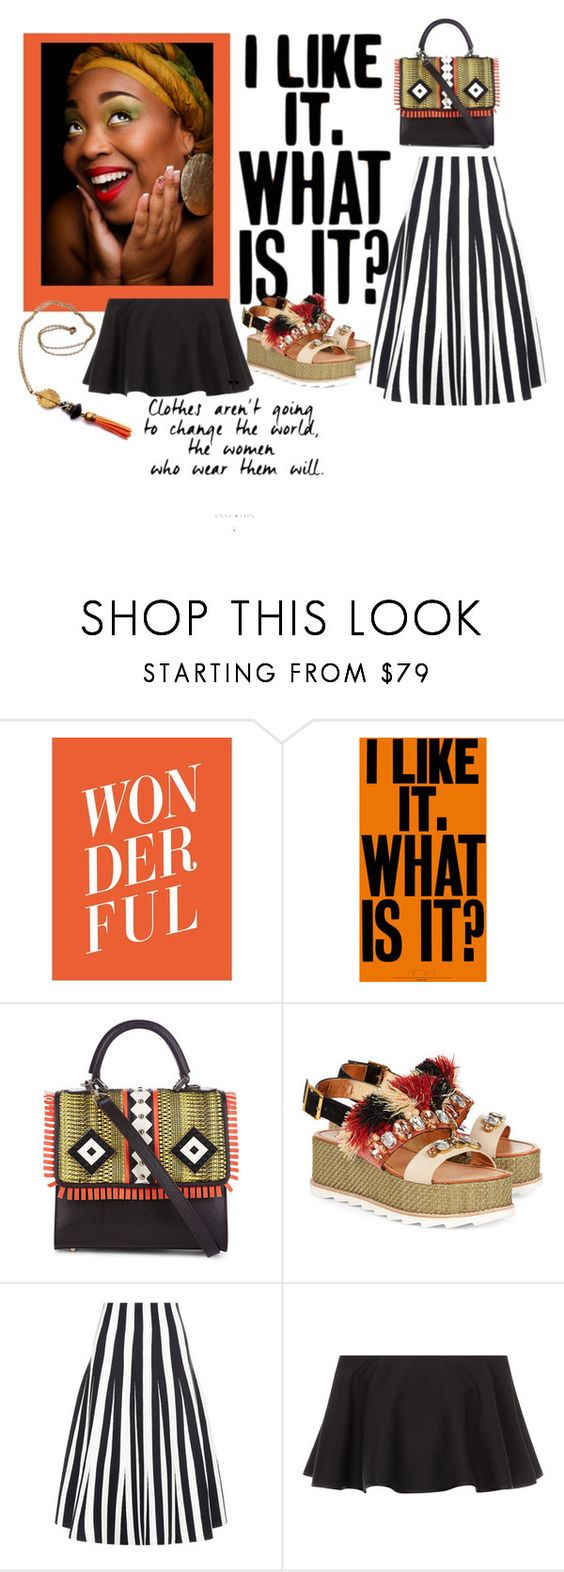 """Untitled #413"" by obsessedaboutstyle ❤ liked on Polyvore featuring Les Petits Joueurs, Sanchita, Alexander Wang, Rosetta Getty, fun, girly and polyvoreeditorial"